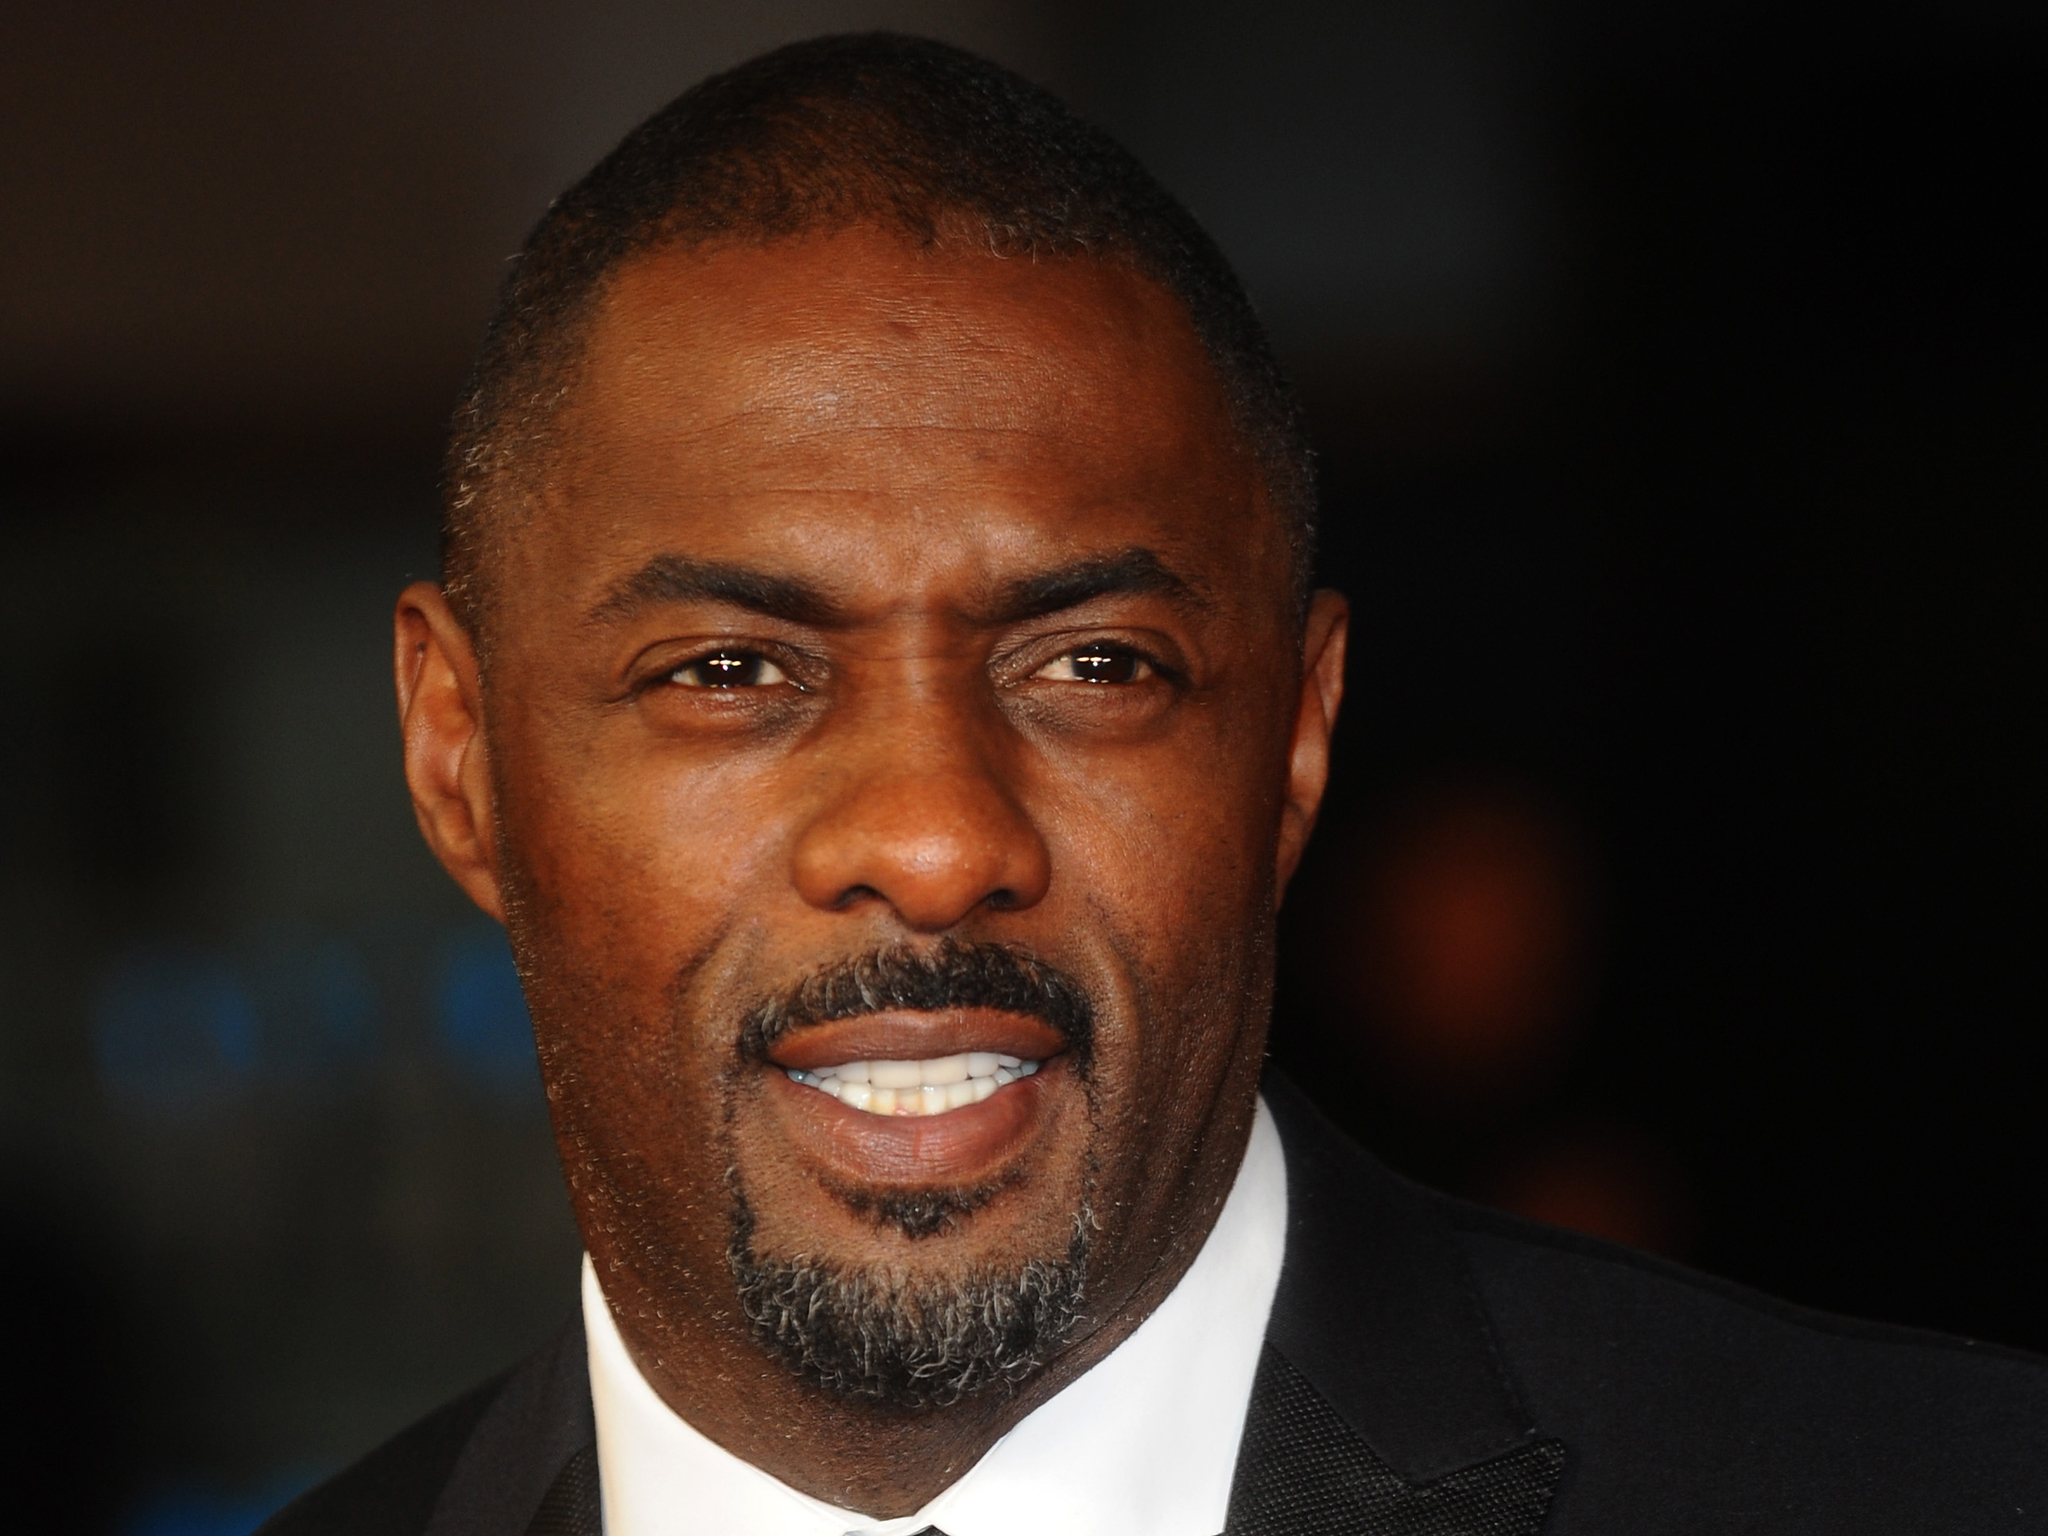 Idris Elba responds to James Bond rumours on Twitter - News - Films - The Independent